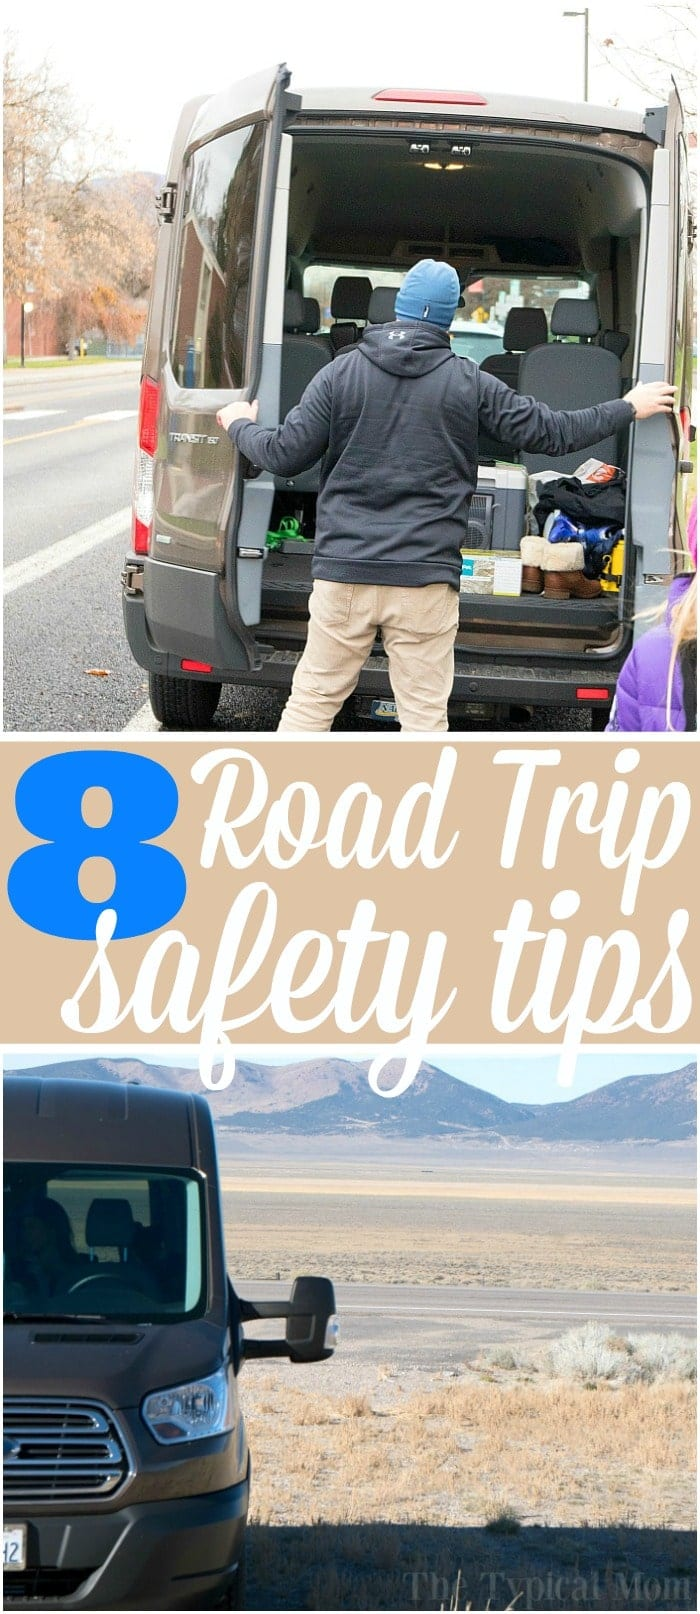 Here are 8 road trip safety tips from a family who travels a lot! What to bring, what to do in case of an emergency, and how to prepare for a long road trip to stay safe along the way. Free checklist to ensure your car is ready and how to keep your kids busy along the way too.